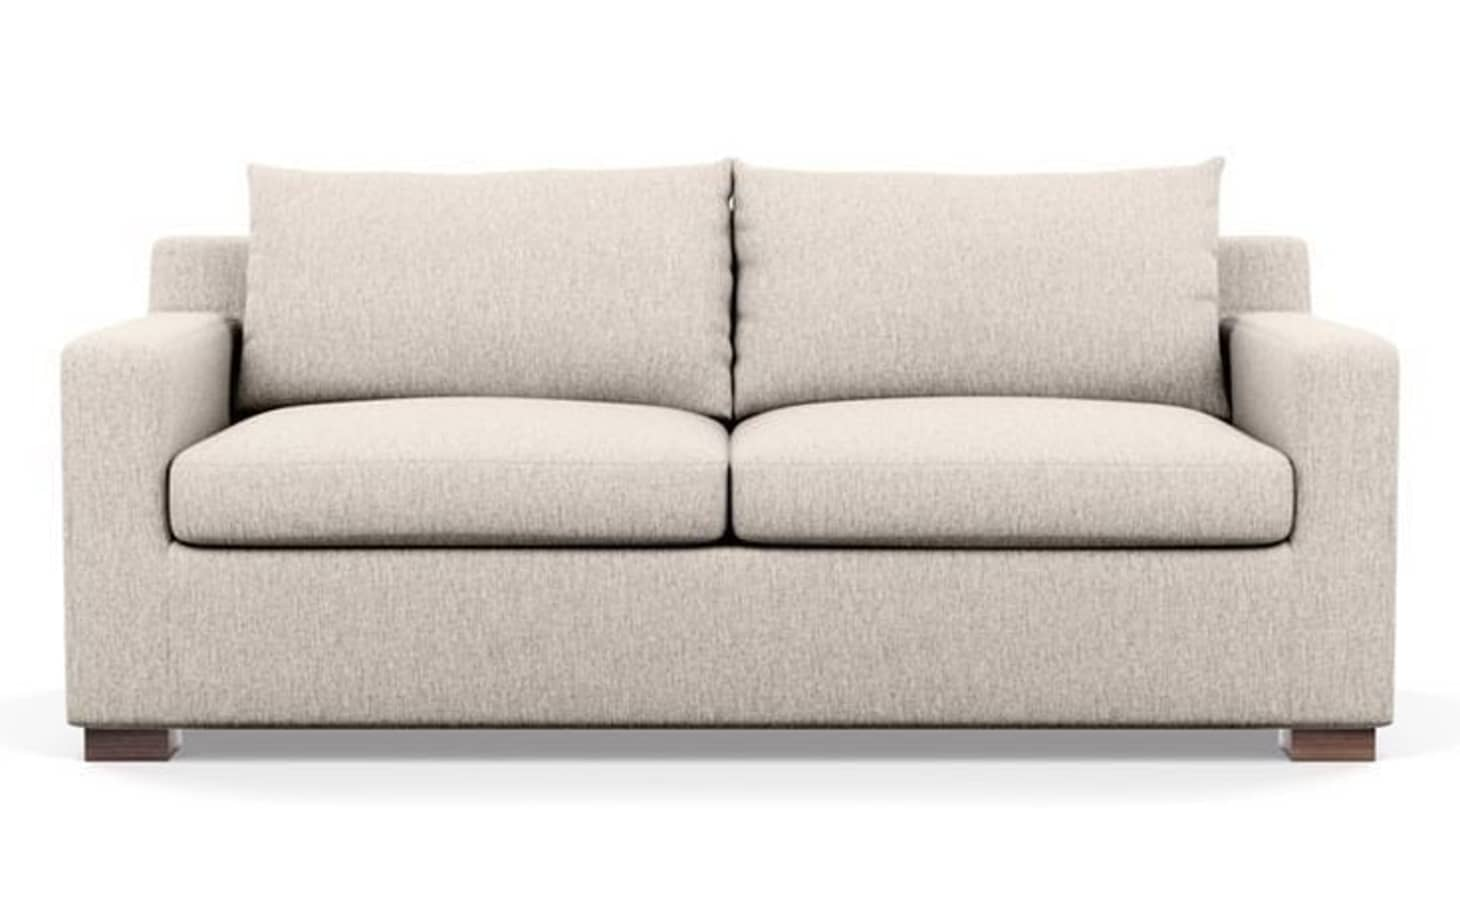 Peachy The Best Sleeper Sofas Sofa Beds Apartment Therapy Pdpeps Interior Chair Design Pdpepsorg